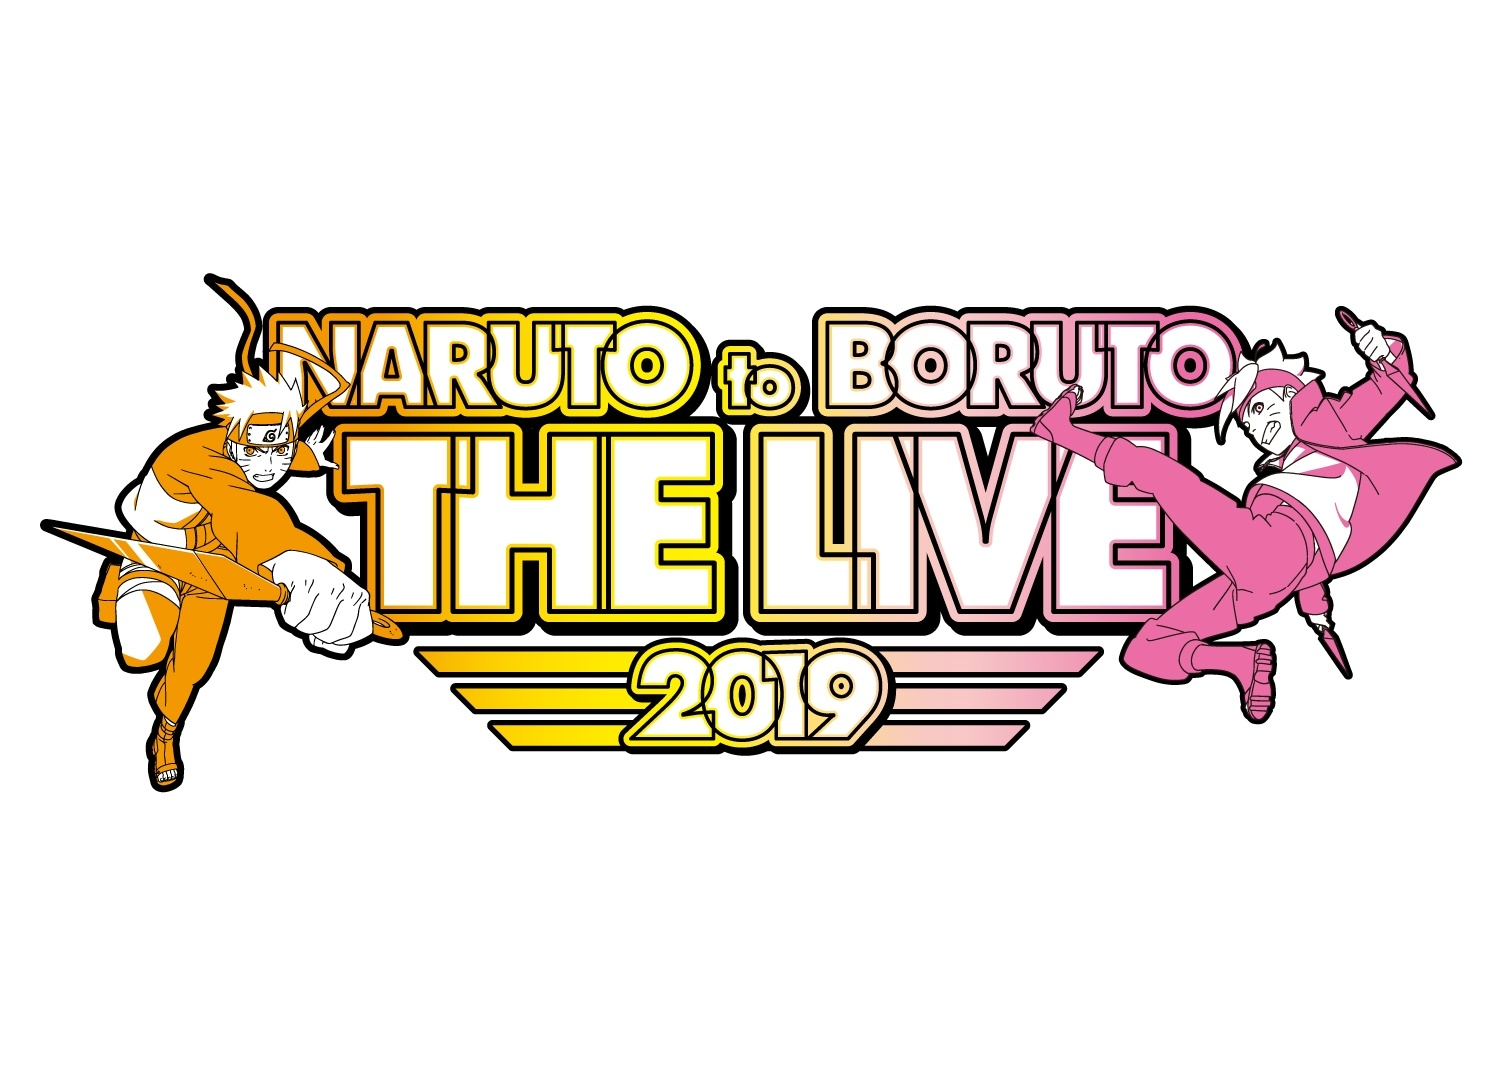 「NARUTO to BORUTO THE LIVE 2019」10月5日(土)、6(日)開催